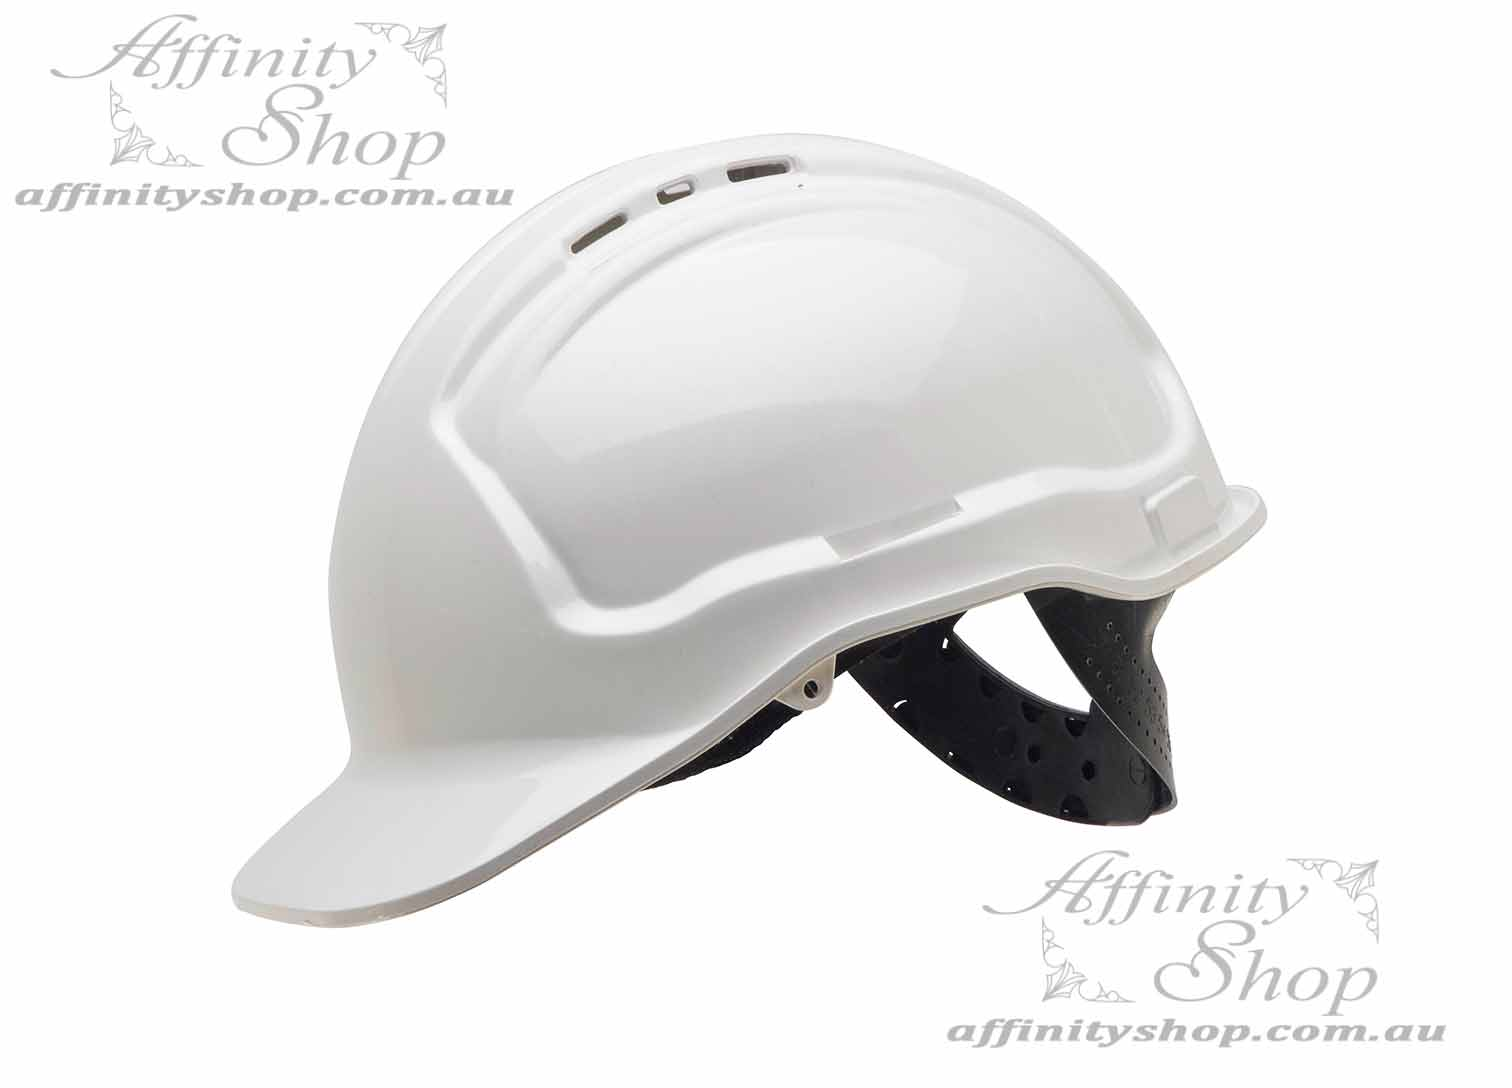 Premium Hard Hat Type 1 Head Protection Tuffguard Force360 HPFPR56